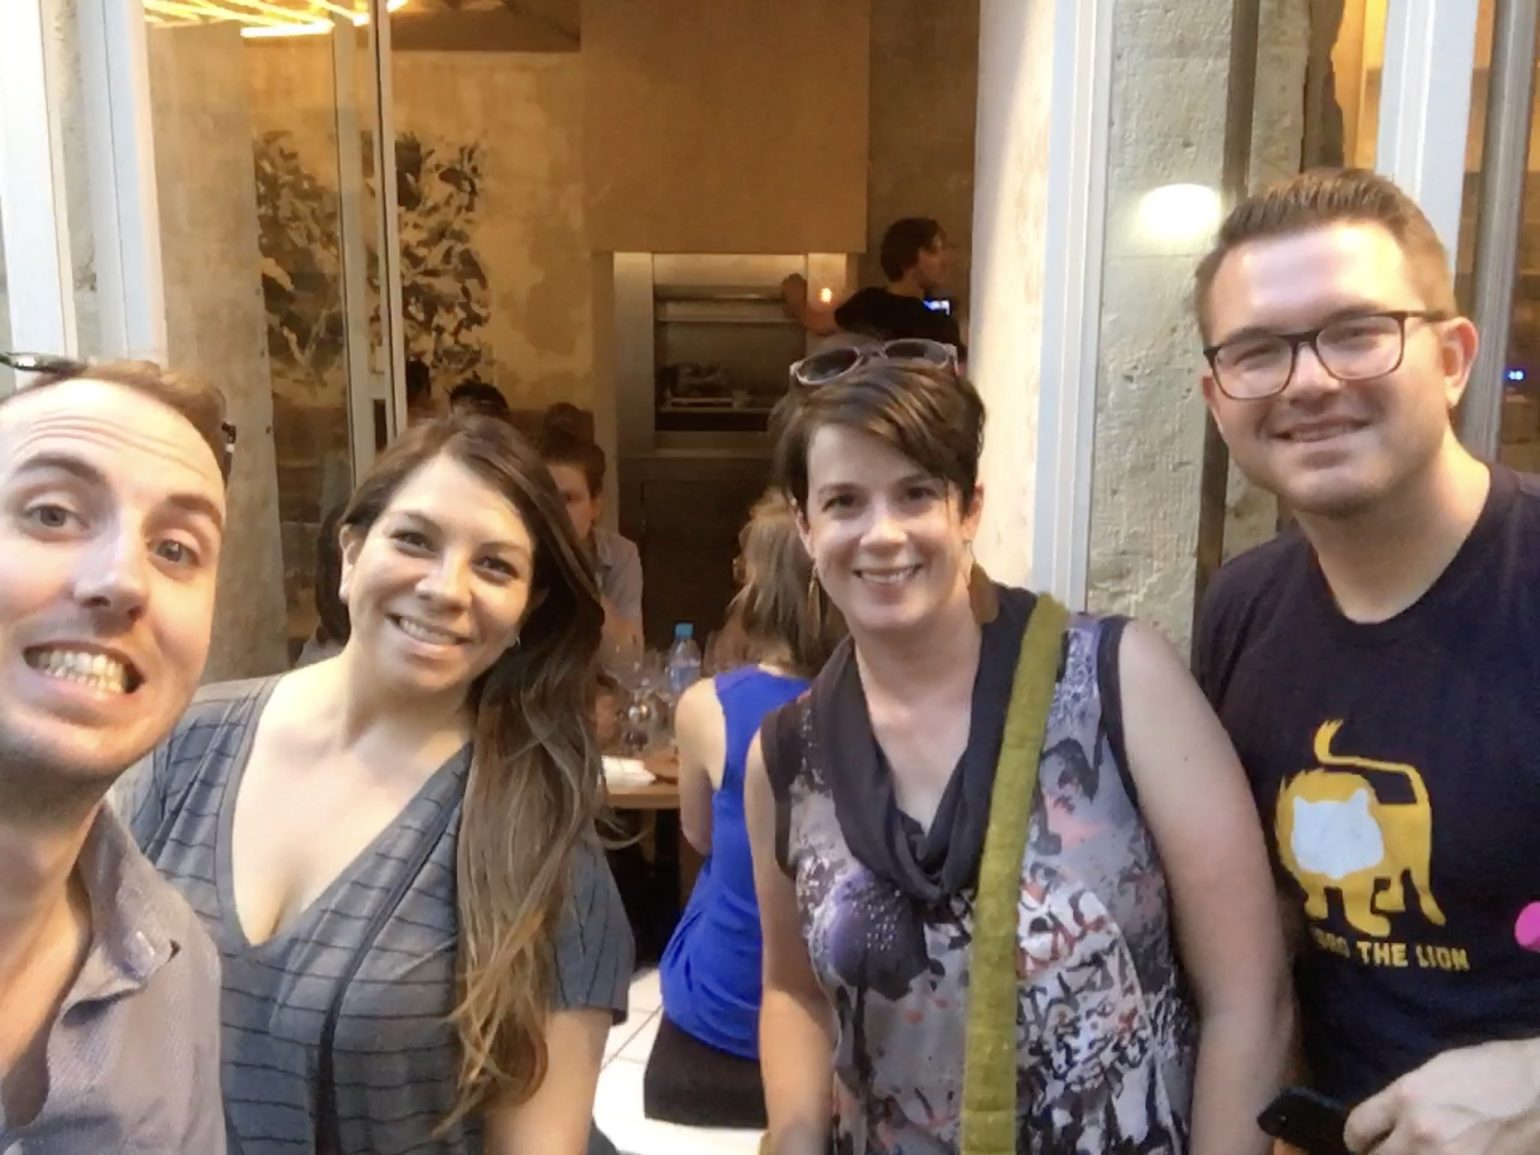 My wife and I with Cody and Raquel Landefeld